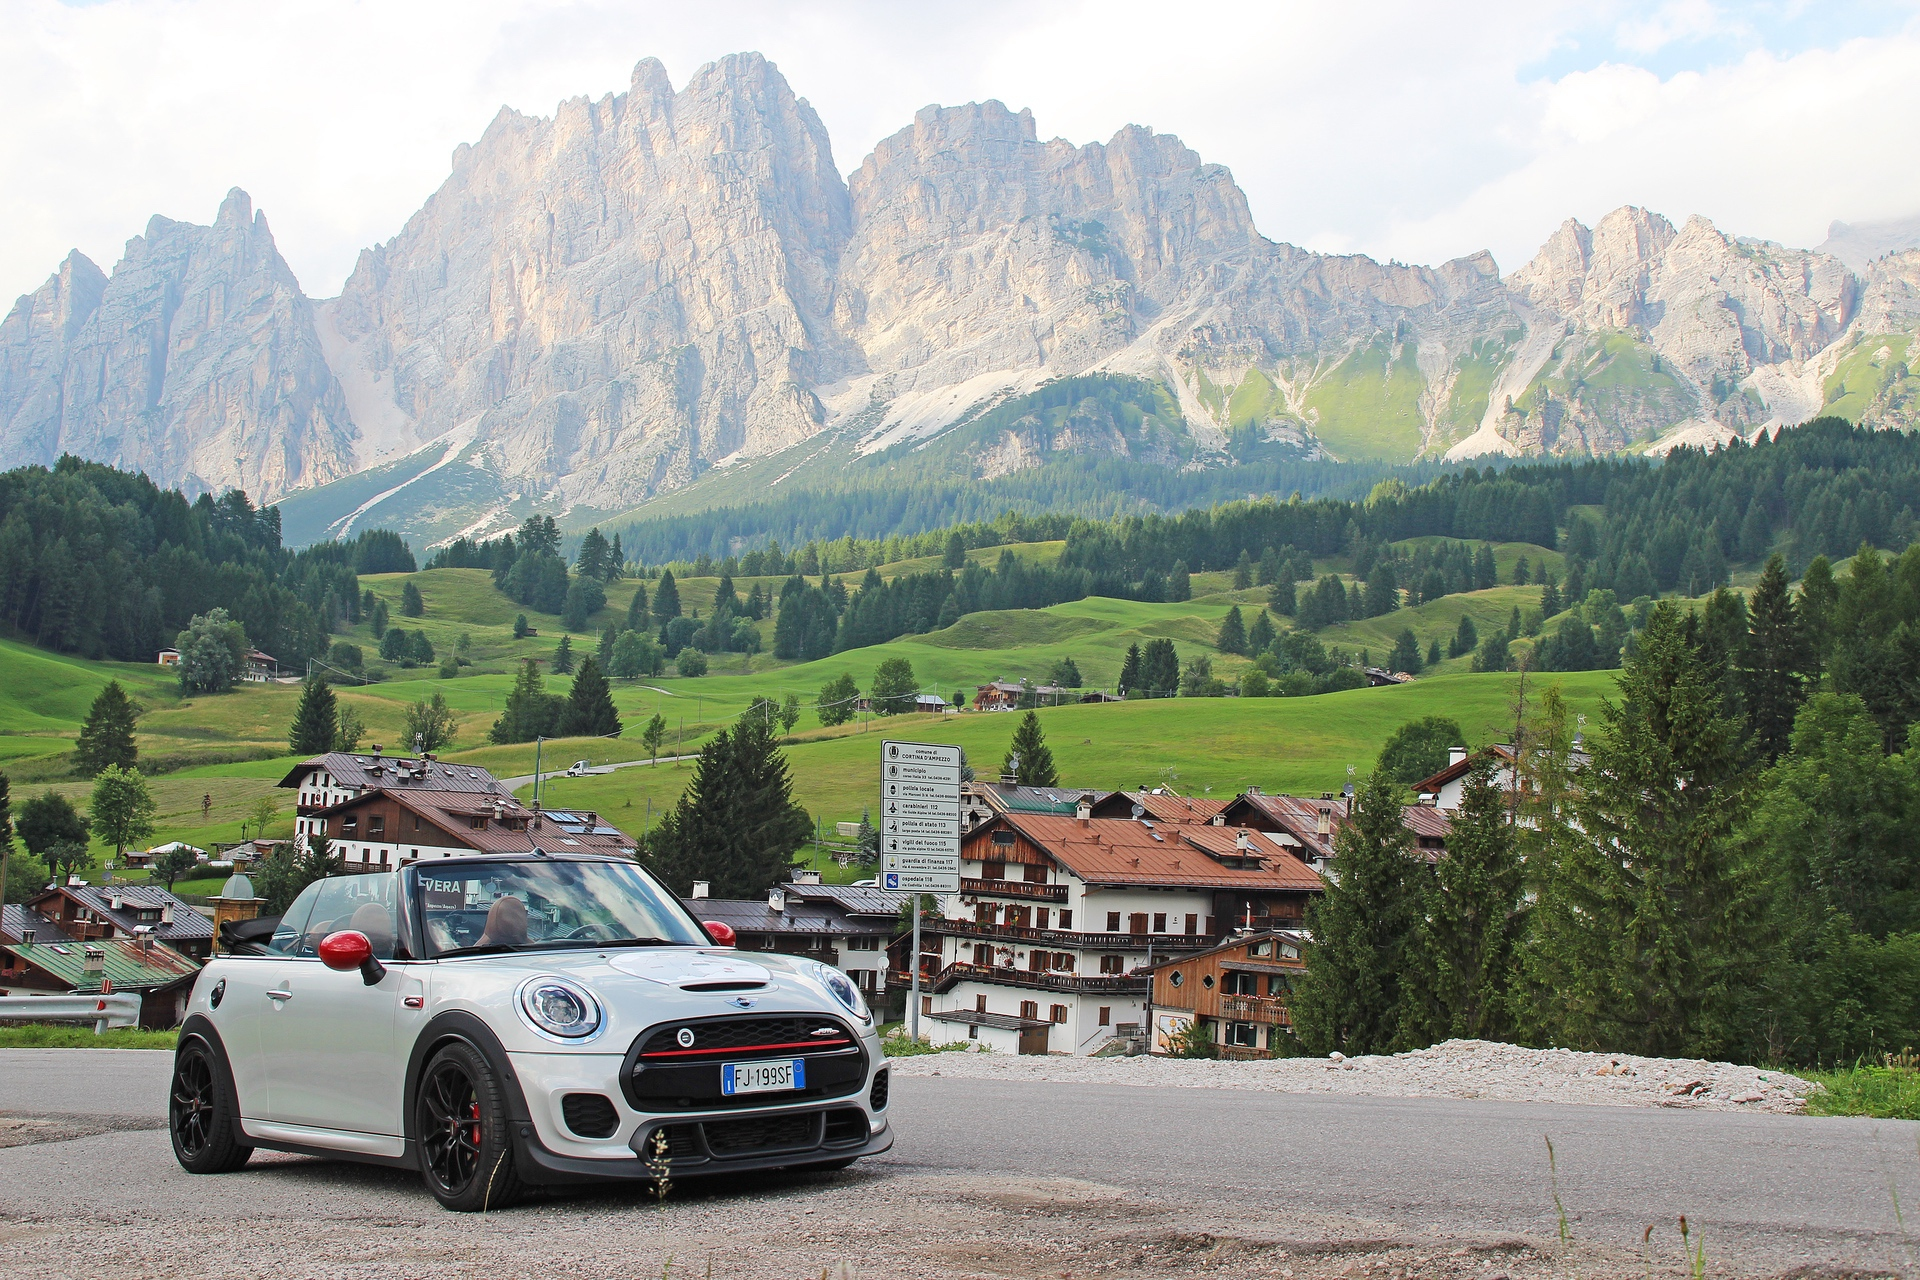 A European Tour with the MINI John Cooper Works Cabriolet